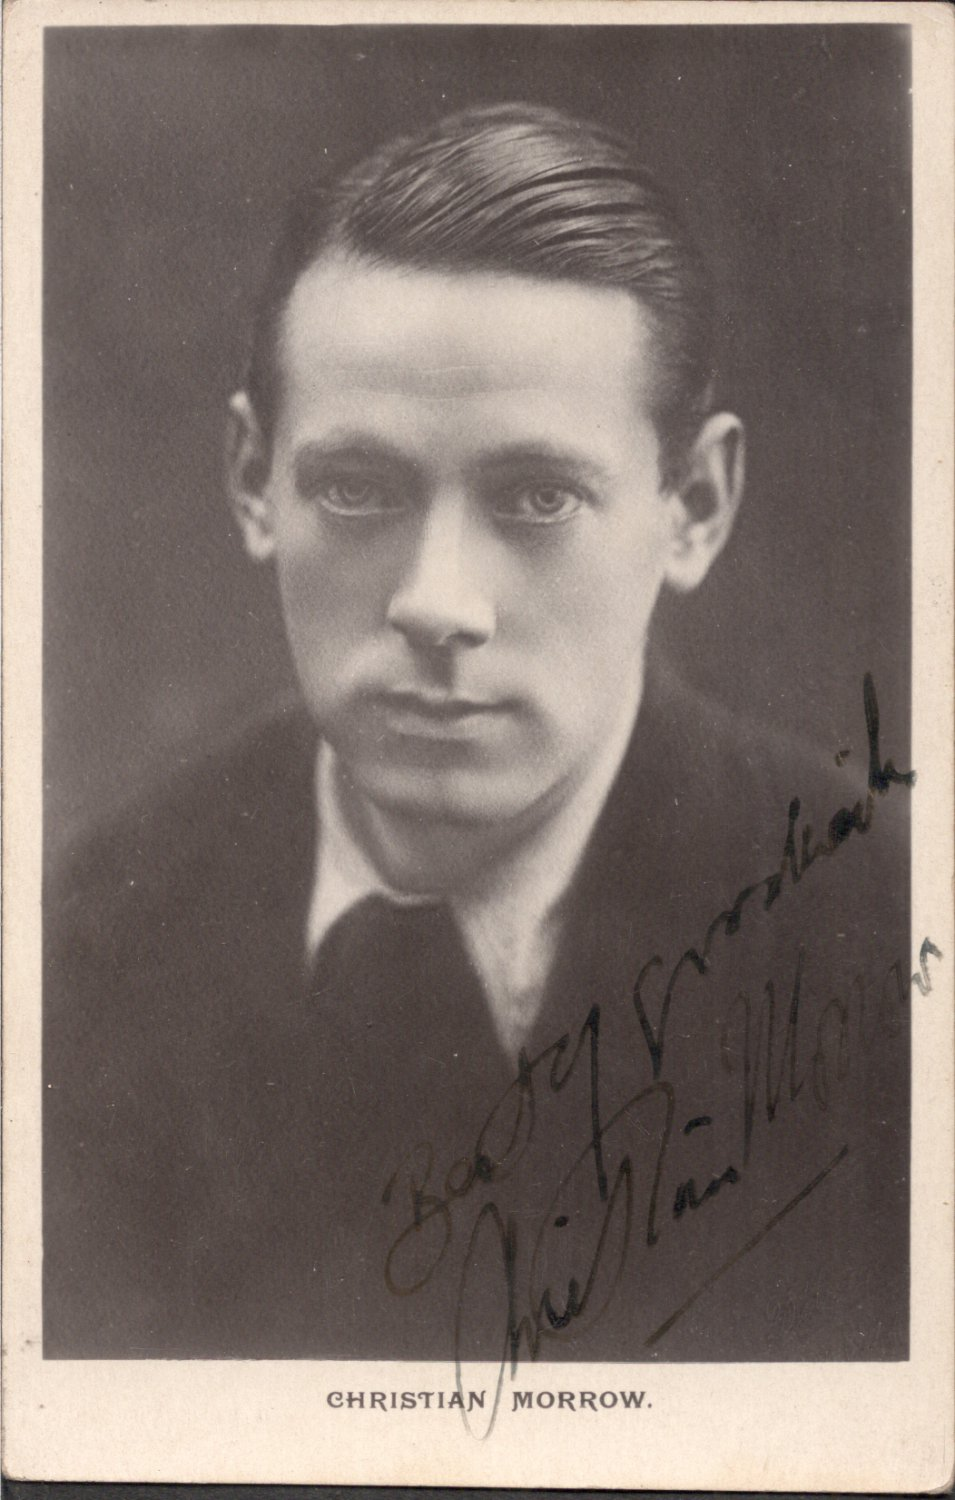 RARE SIGNED LESSER KNOWN BRITISH THEATER ARTIST CHRISTIAN MORROW PICTURE POSTCARD 1920'S